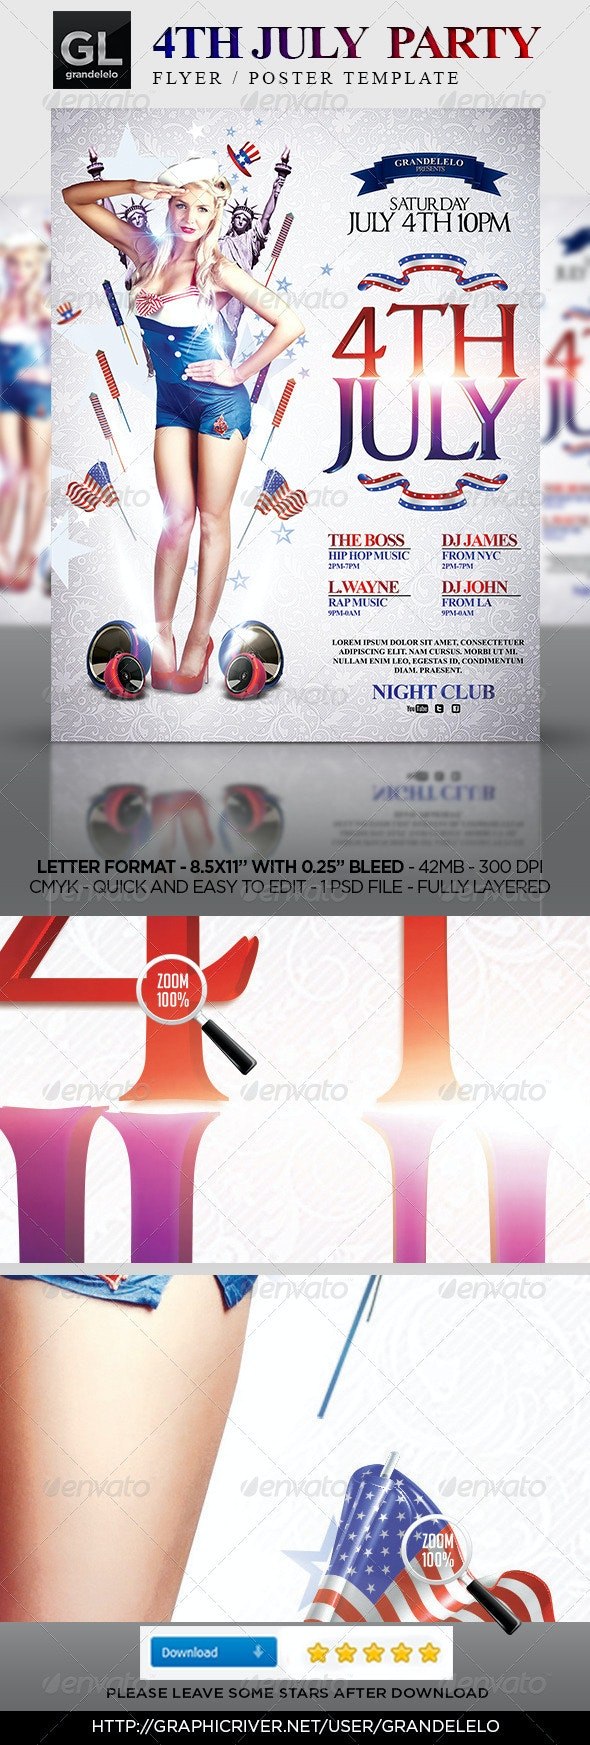 4Th July Party Flyer Template - Holidays Events